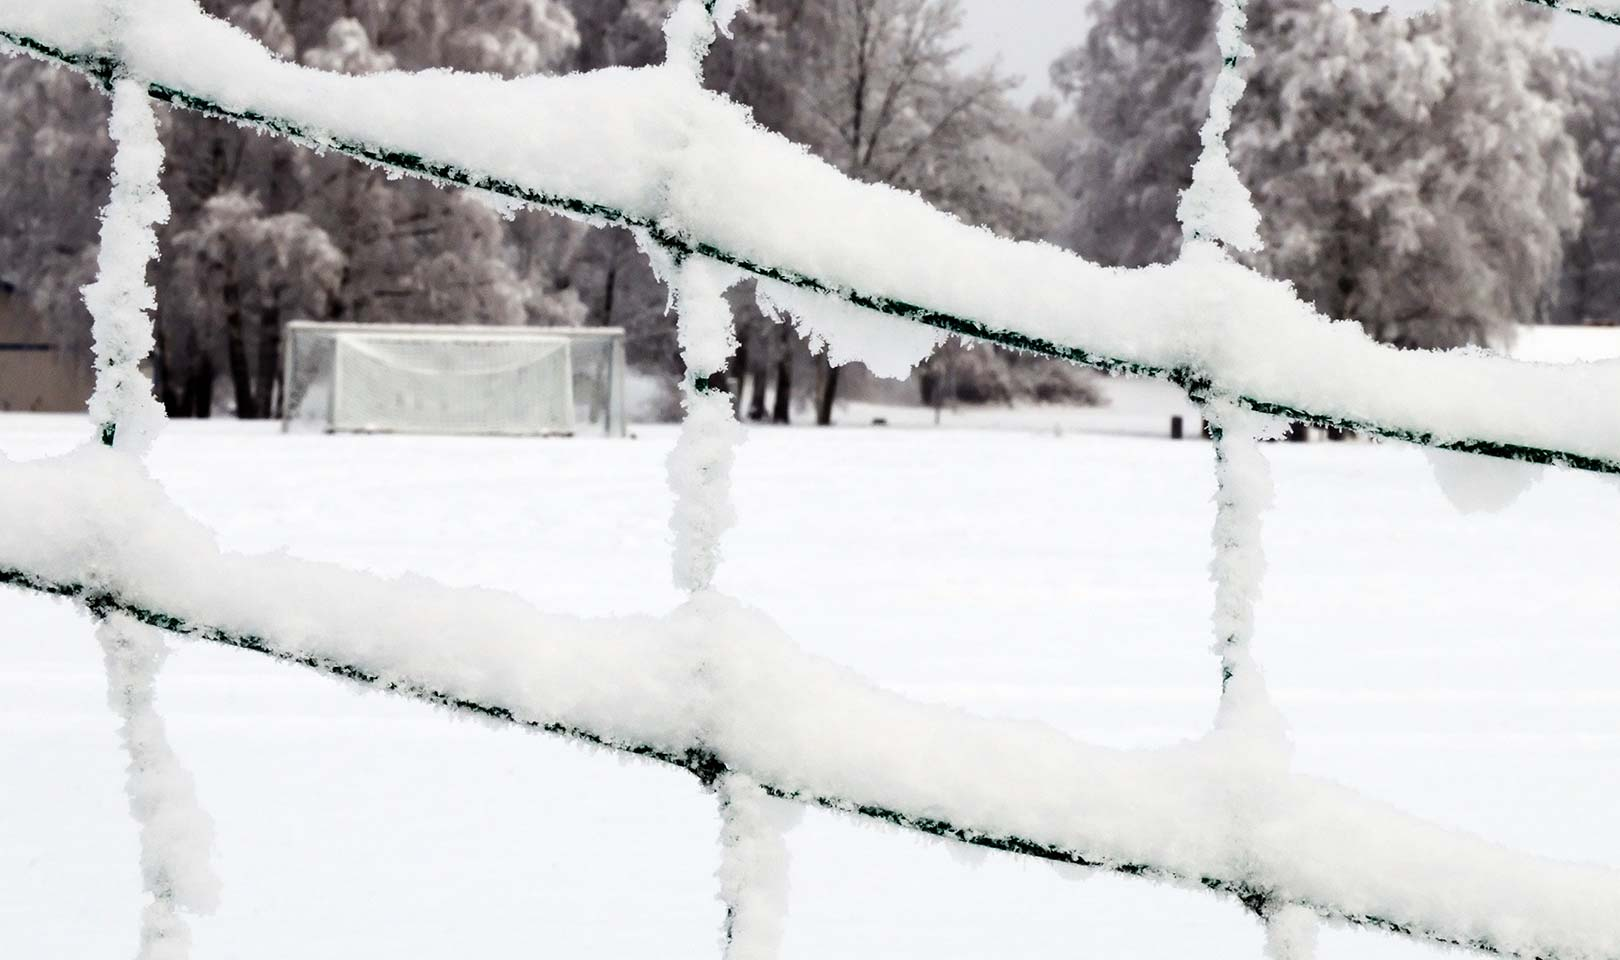 A view through a football net covered in snow.